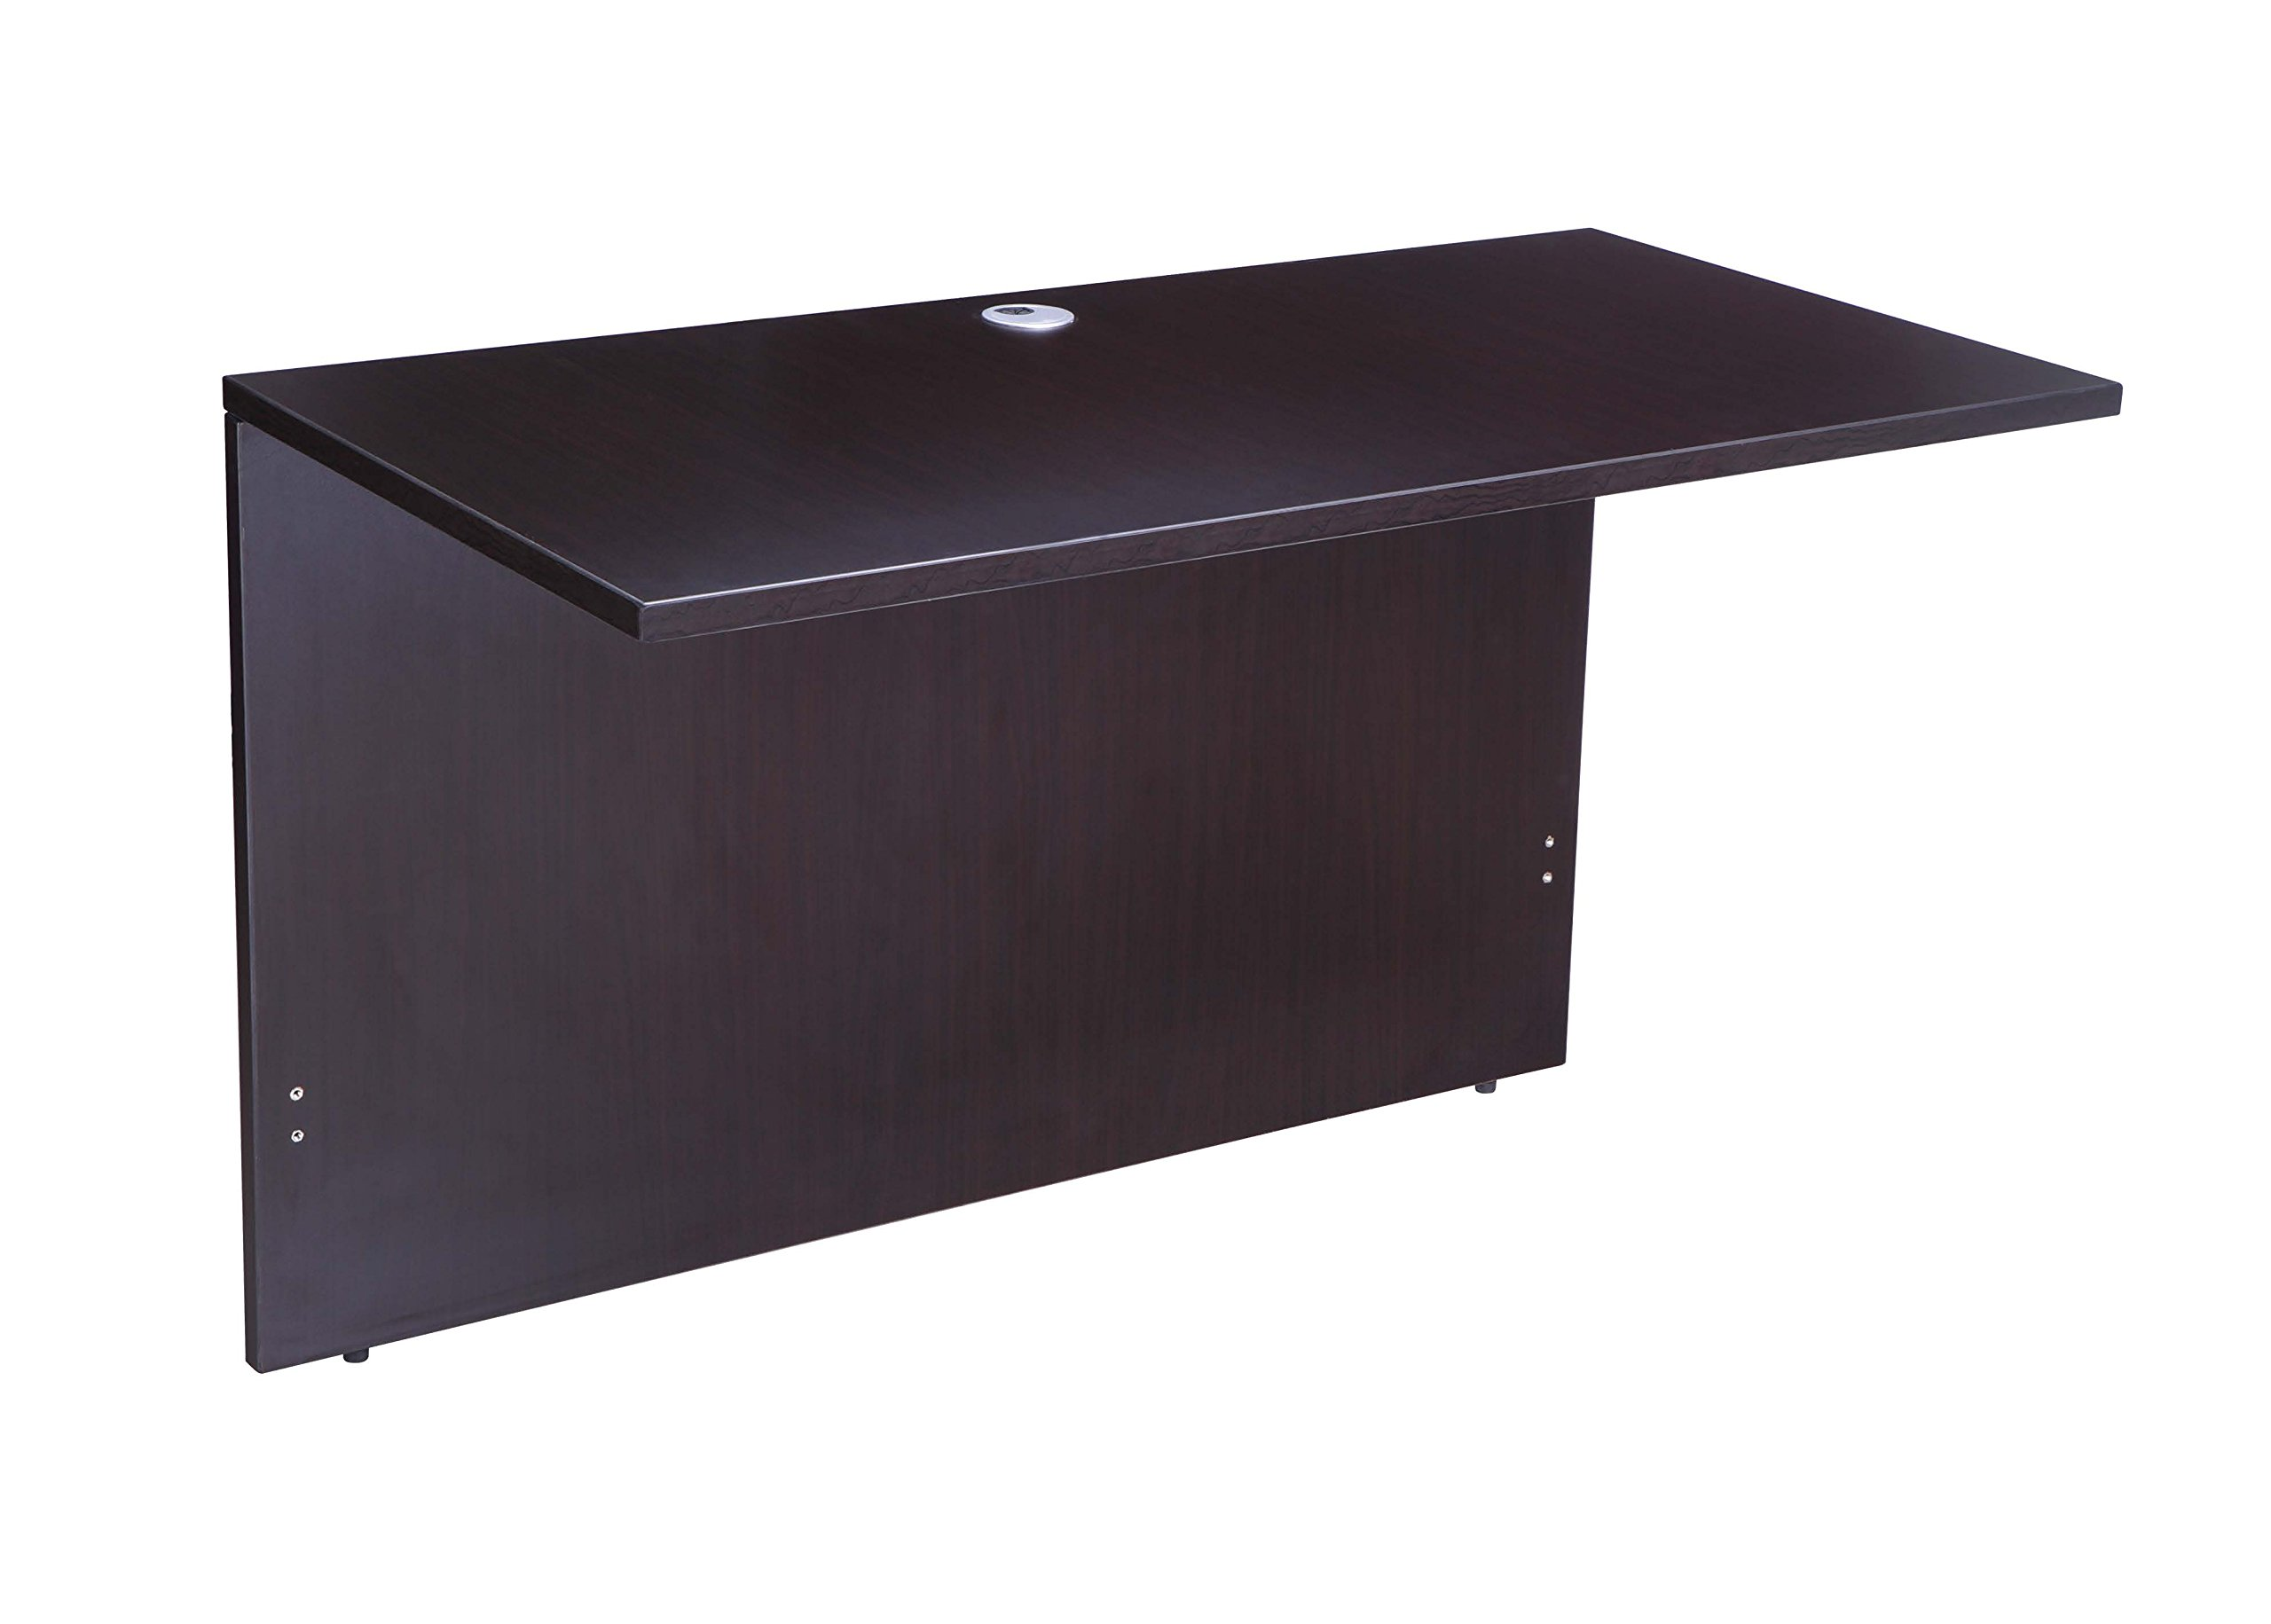 Boss Office Products Holland 71'' Executive U-Shape Desk with File Storage Pedestal and Hutch, Mocha by Boss Office Products (Image #4)